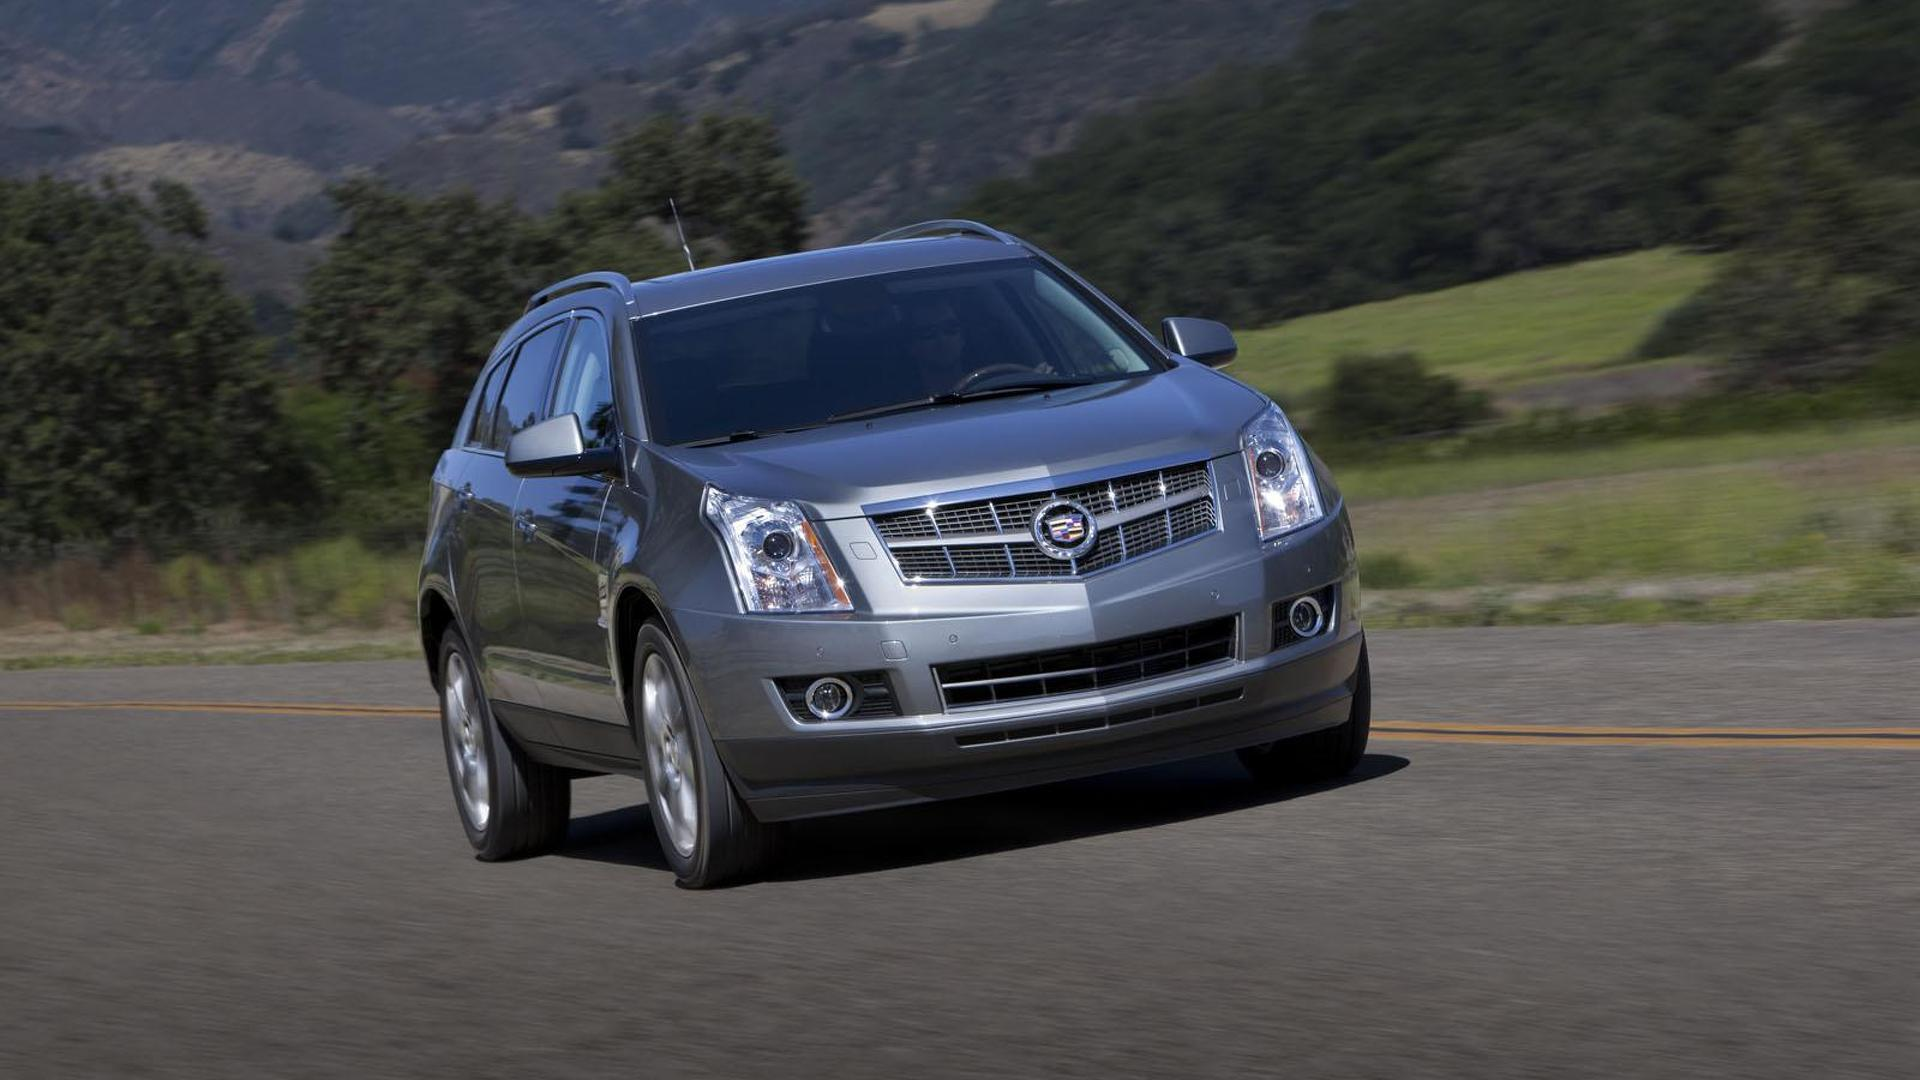 Cadillac considering a BMW X3 competitor - report